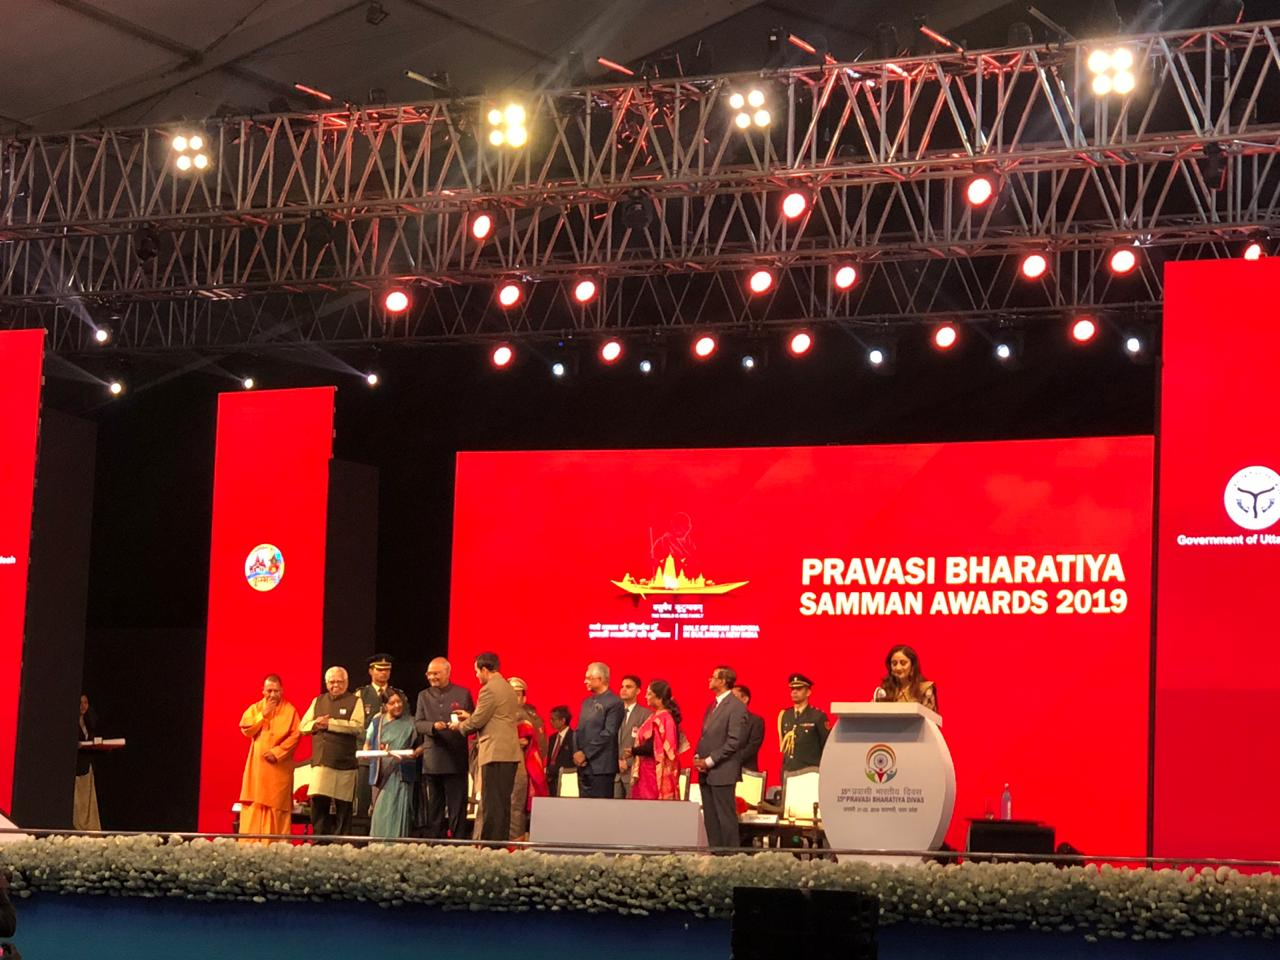 The Pravasi Bharatiya Samman Award is the highest honour given by India to the diaspora across the world. Photo courtesy: Twitter/@PBDConvention